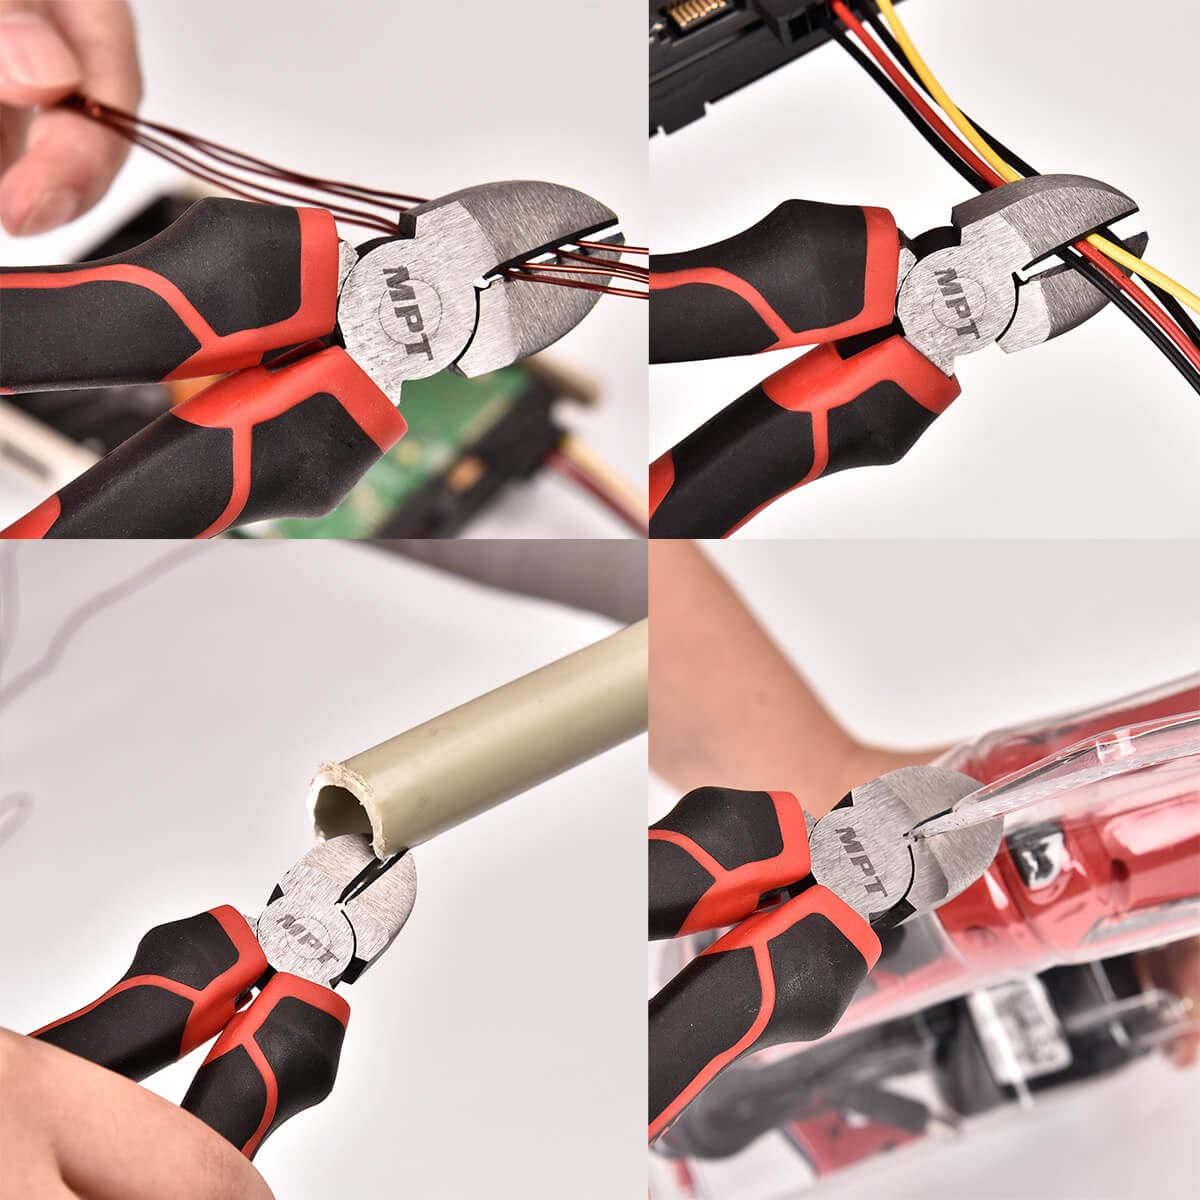 MPT Wire Cutter, Cut Pliers, Diagonal Cutting Pliers, Side Cutters, High Leverage, Angled Head, Standard Cut, Short Jaw, Heavy Duty Professional Quality, 7 inch Cutting Pliers Precision Flush Cutter